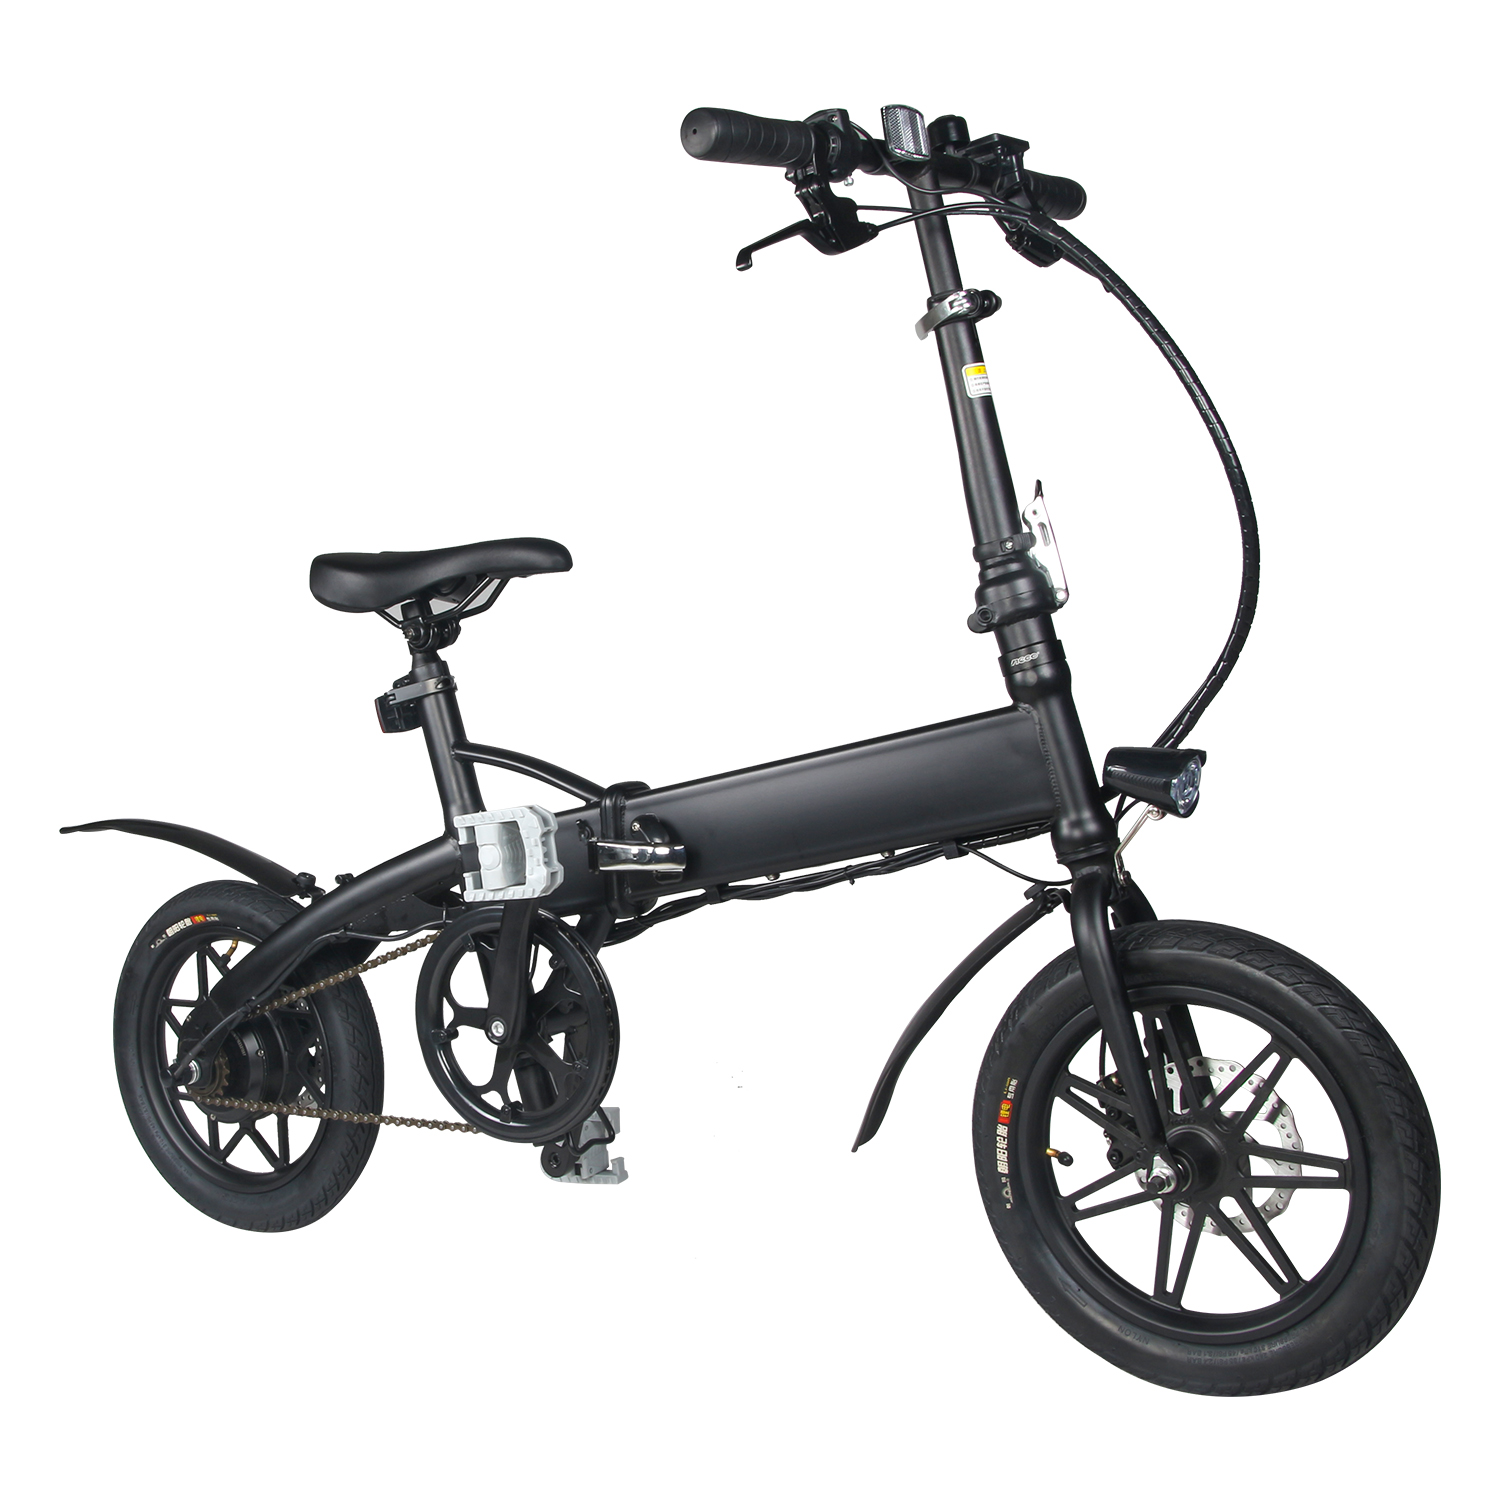 e city bike 14 v lo lectrique pliable moteur bicyclette 36v 4ah 250w ebay. Black Bedroom Furniture Sets. Home Design Ideas